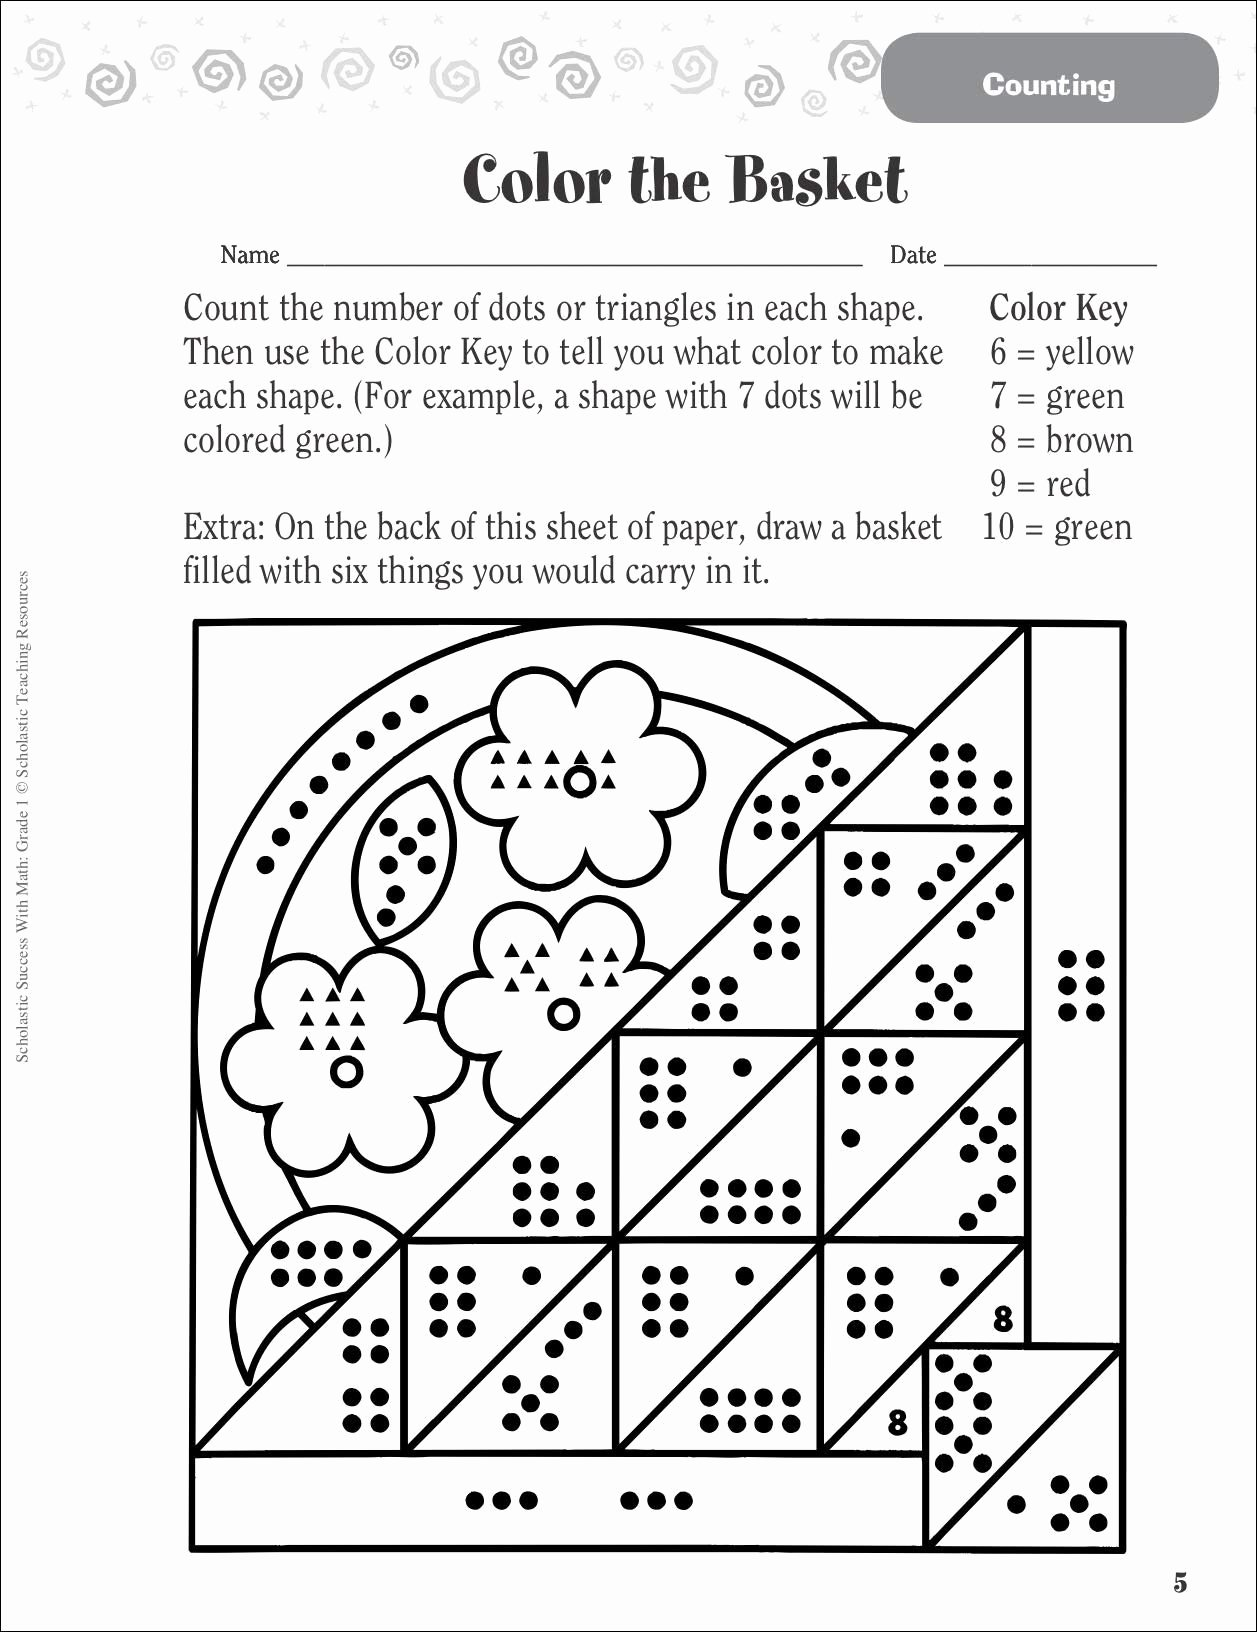 Multiplication Worksheets to Print New Worksheets Printable Fun Math Worksheets Multiplication